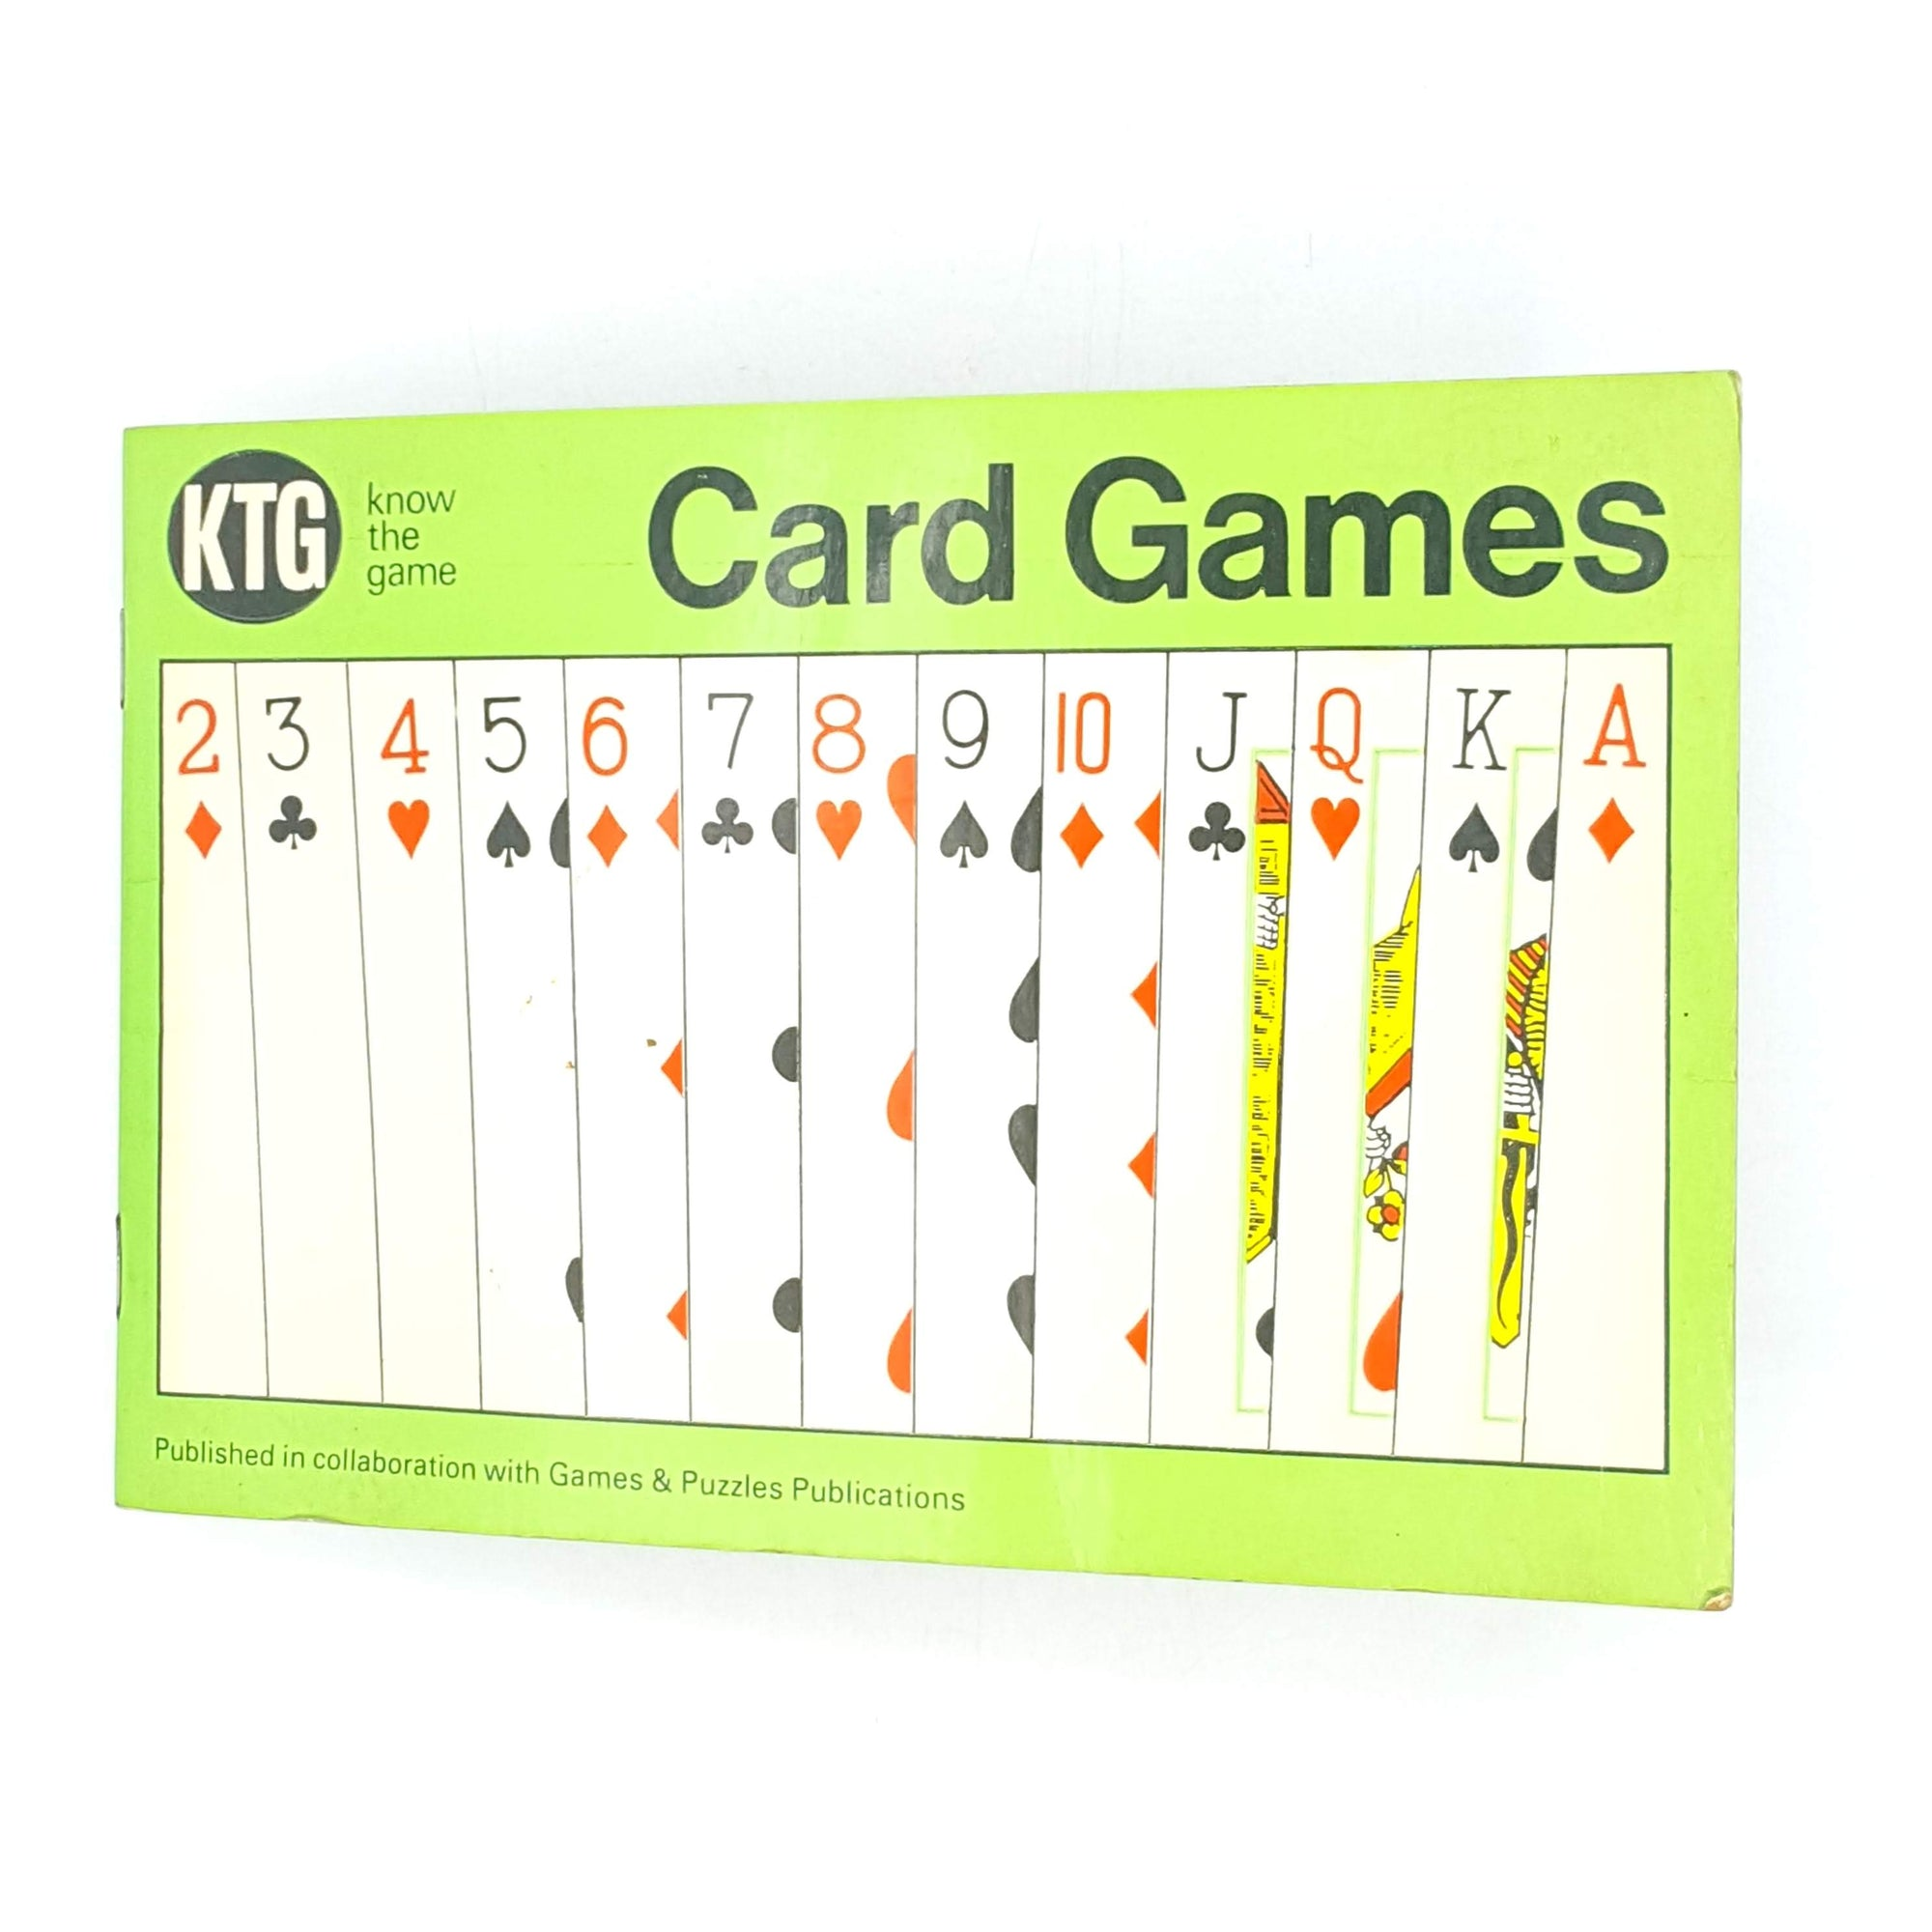 Know the Game: Card Games